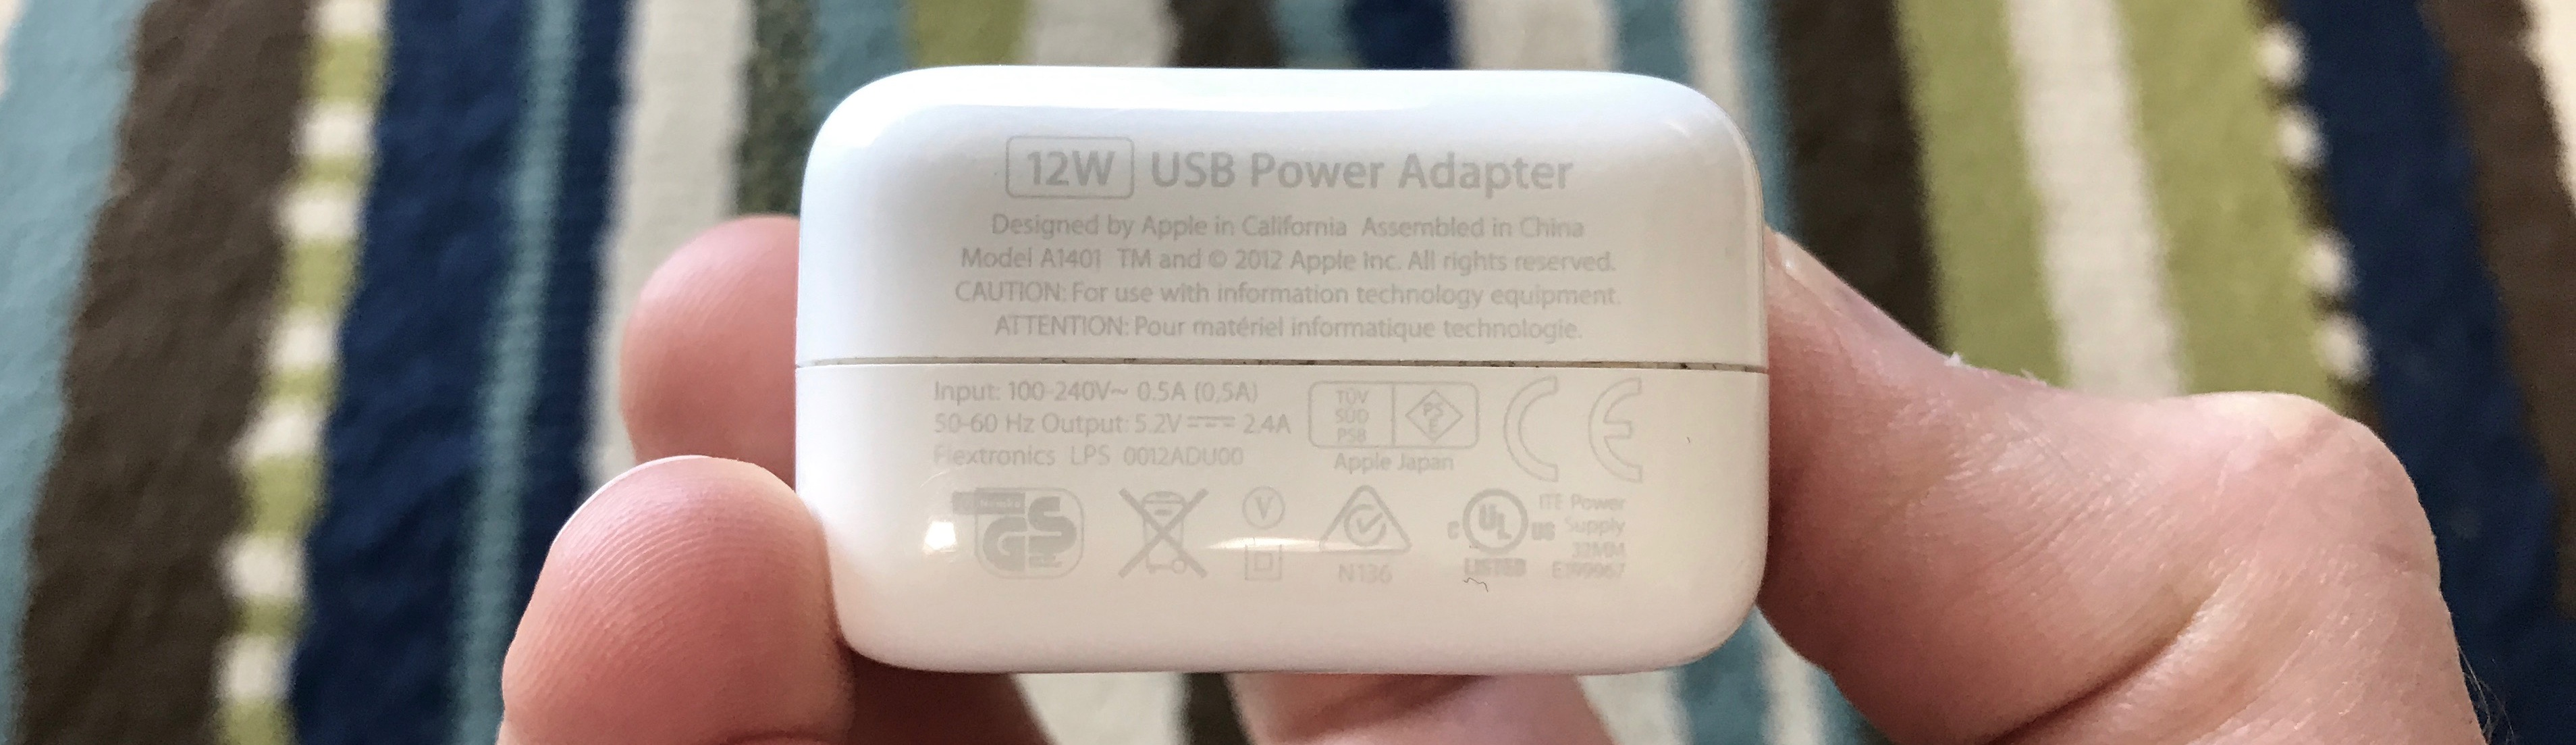 Image showing where to look on Apple power adapters for wattage details